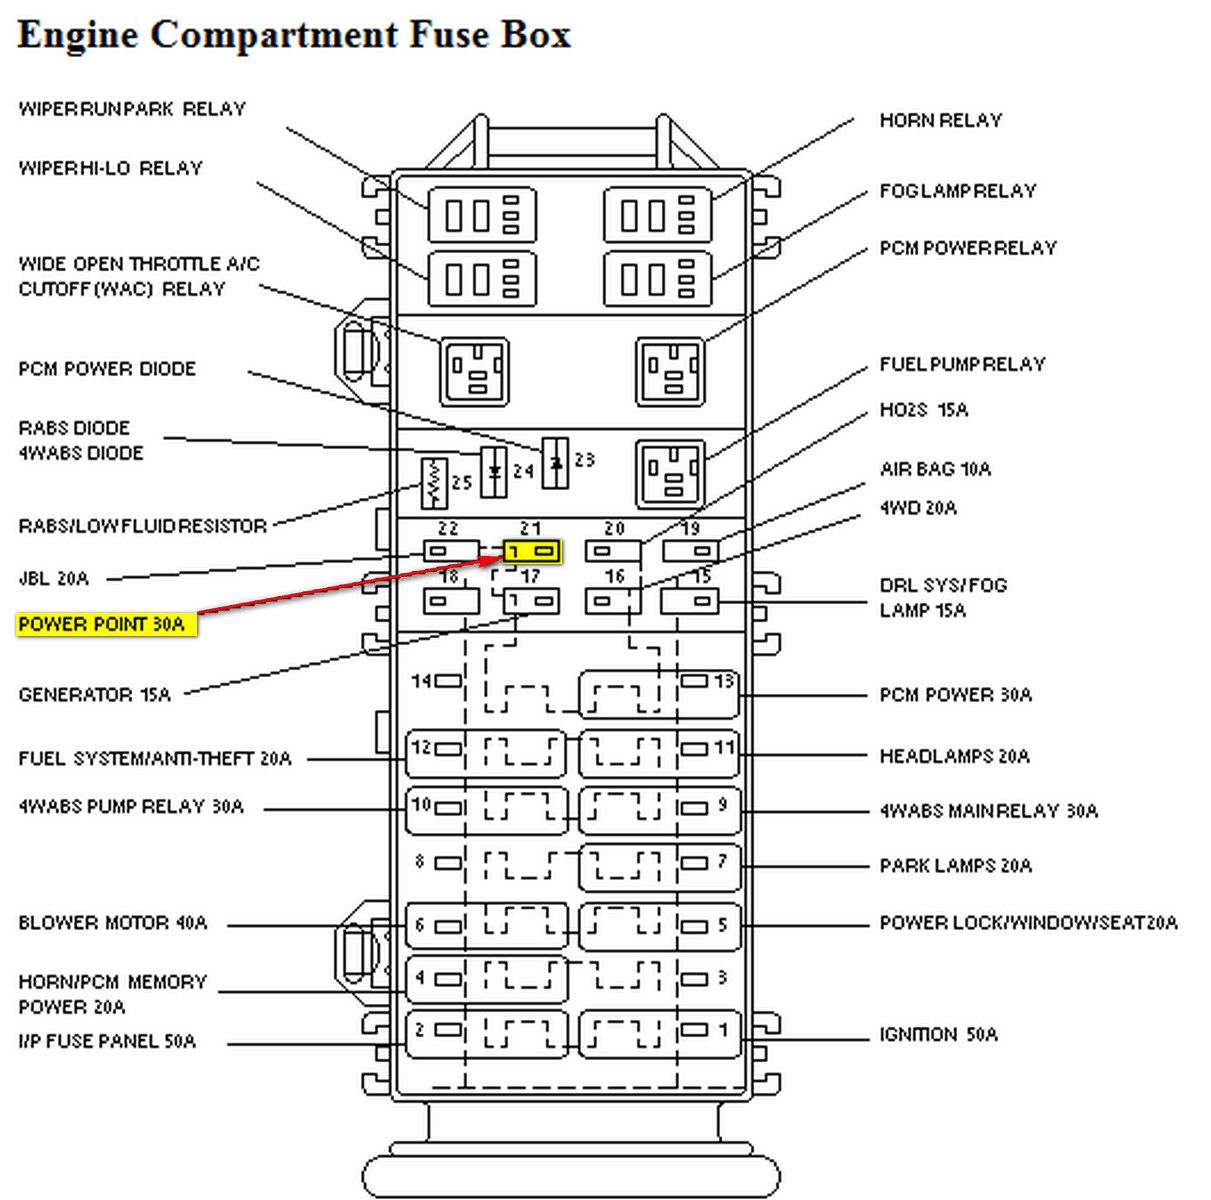 2000 ranger fuse panel diagram wiring diagram forward 2000 ranger fuse box 2000 ranger fuse box [ 1211 x 1200 Pixel ]